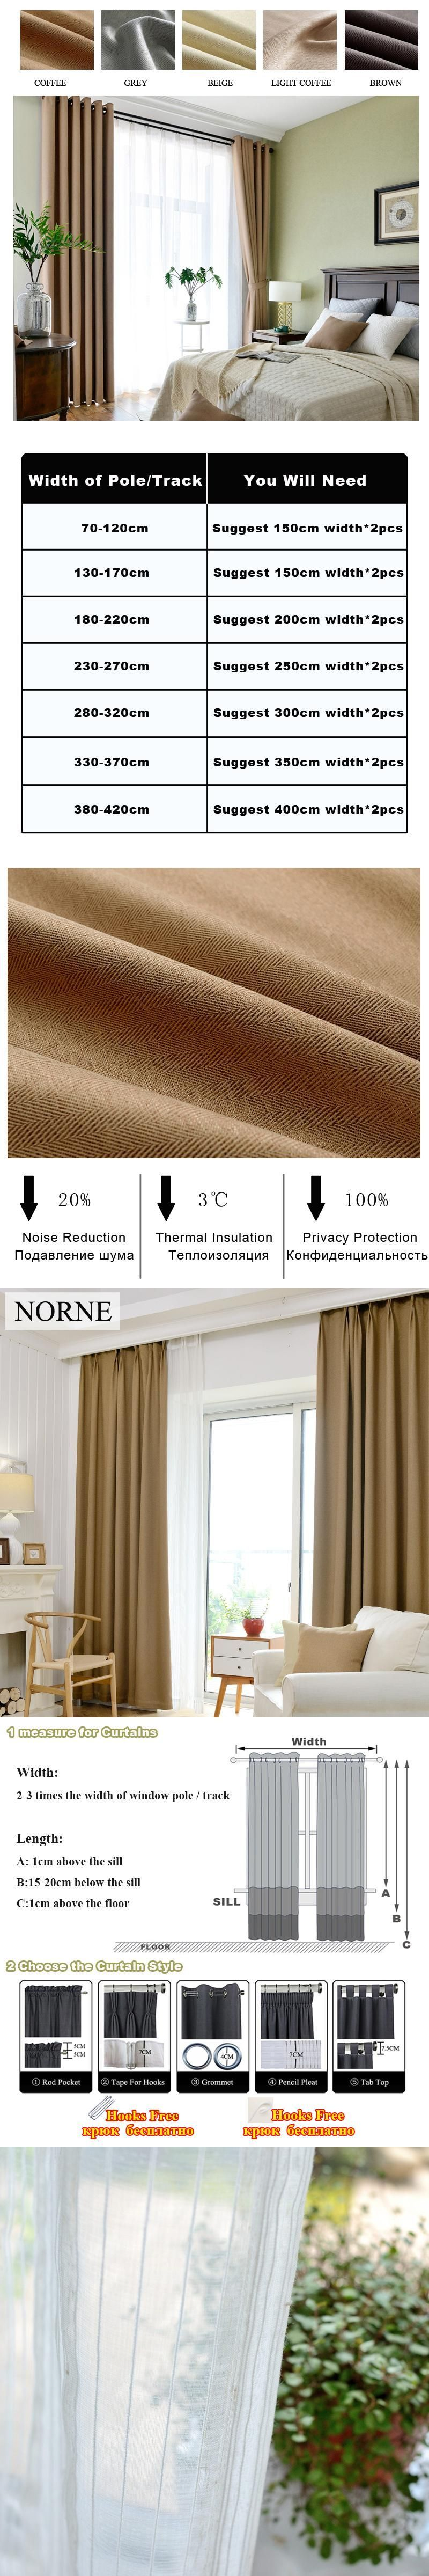 Norne solid heavy thermal insulated blackout curtain curtains window